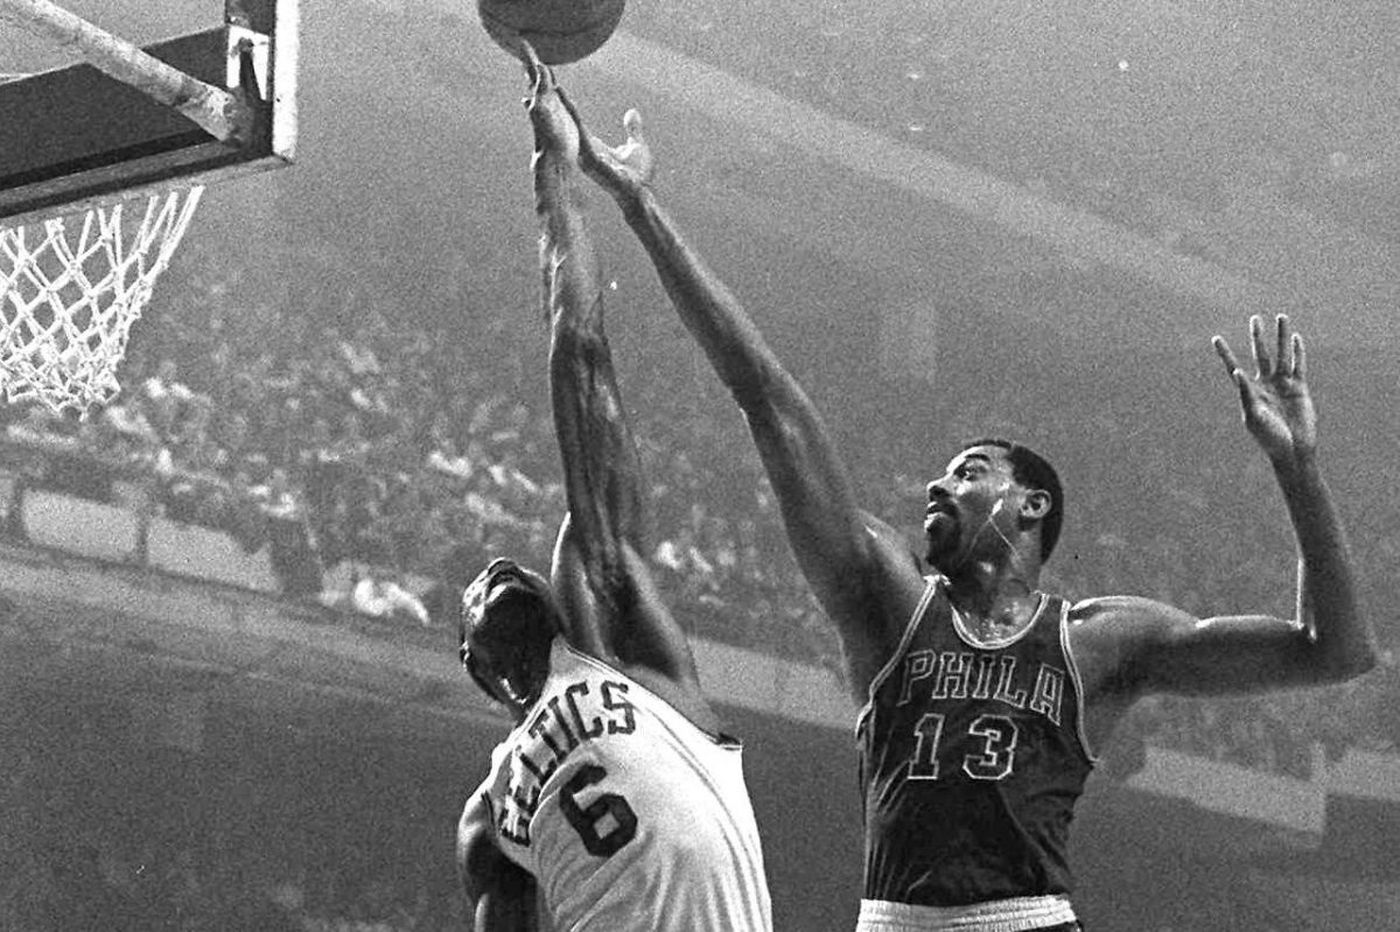 A look back at Wilt Chamberlain on the anniversary of his death